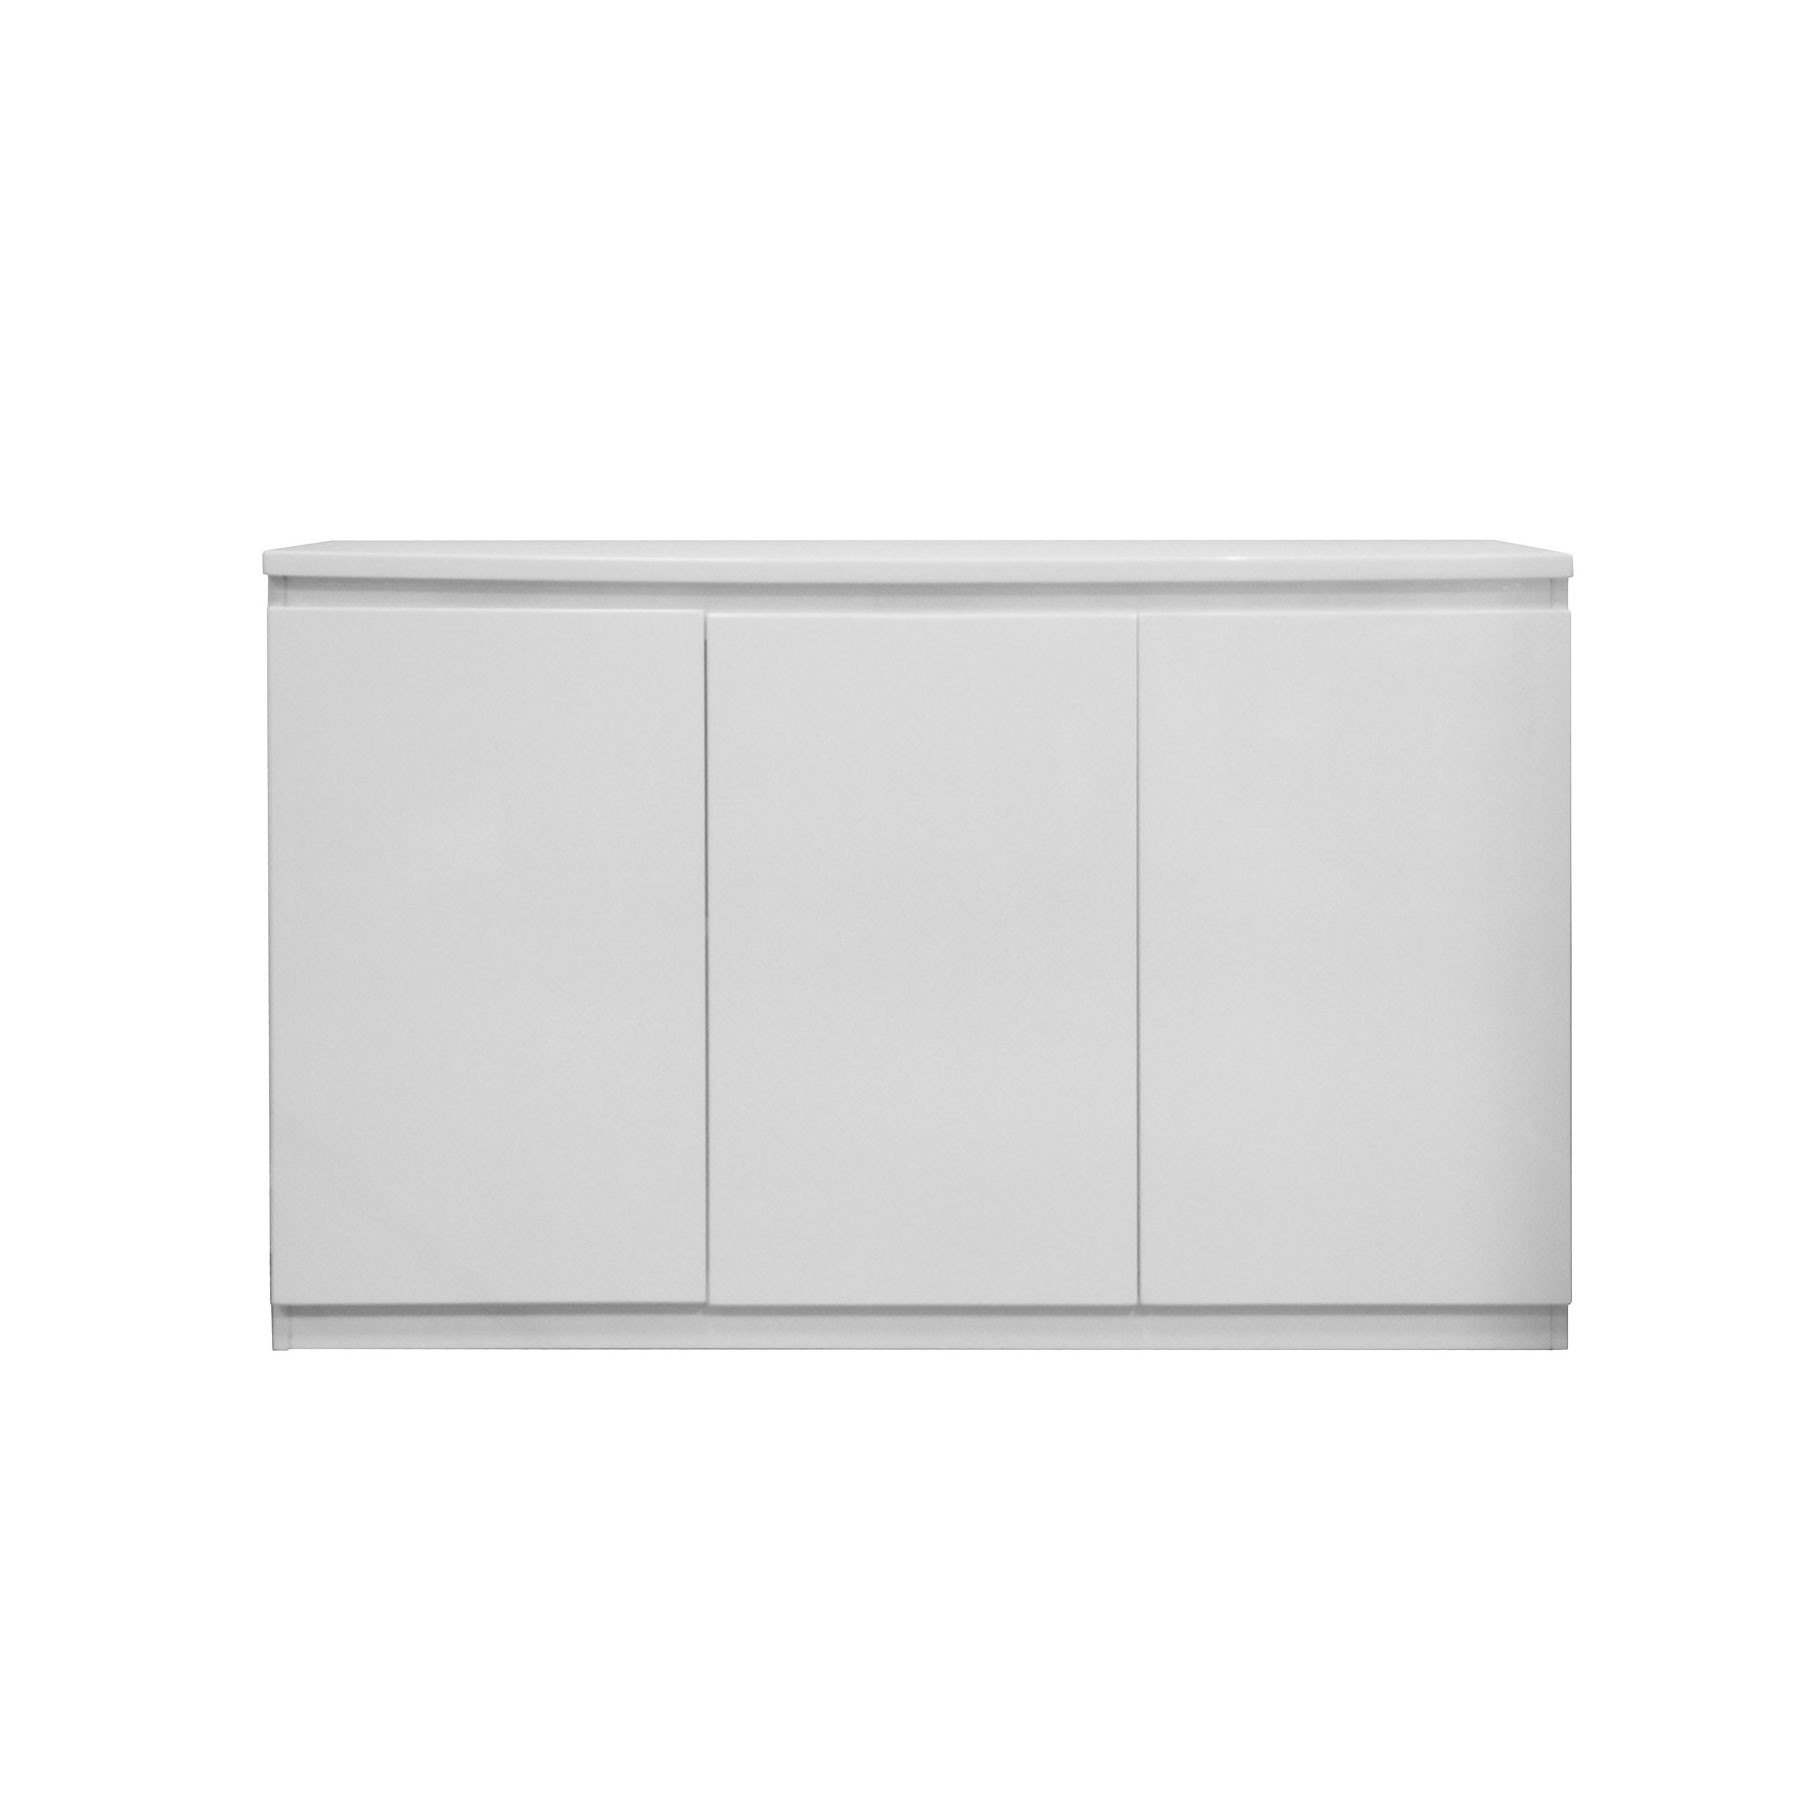 Inspiration about Vigo High Gloss White 3 Door Sideboard Pertaining To Current White Wash 3 Door 3 Drawer Sideboards (#16 of 20)